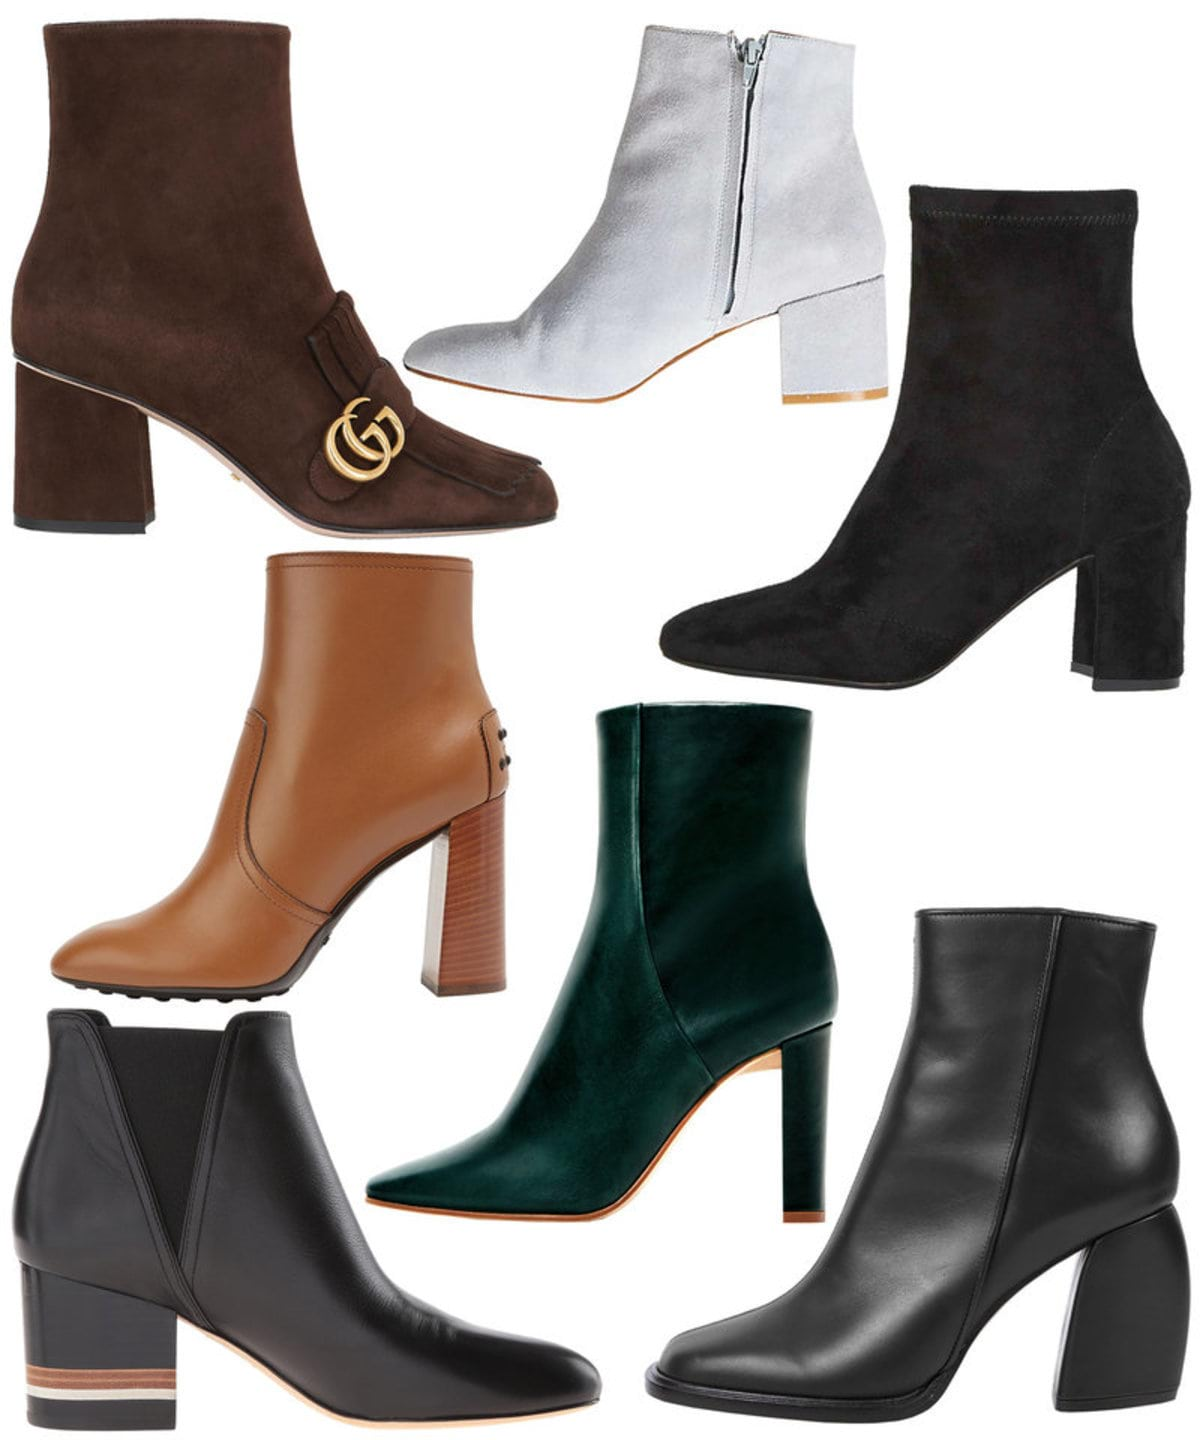 072816-Boot-Guide-Embed2-Ankle-Boot